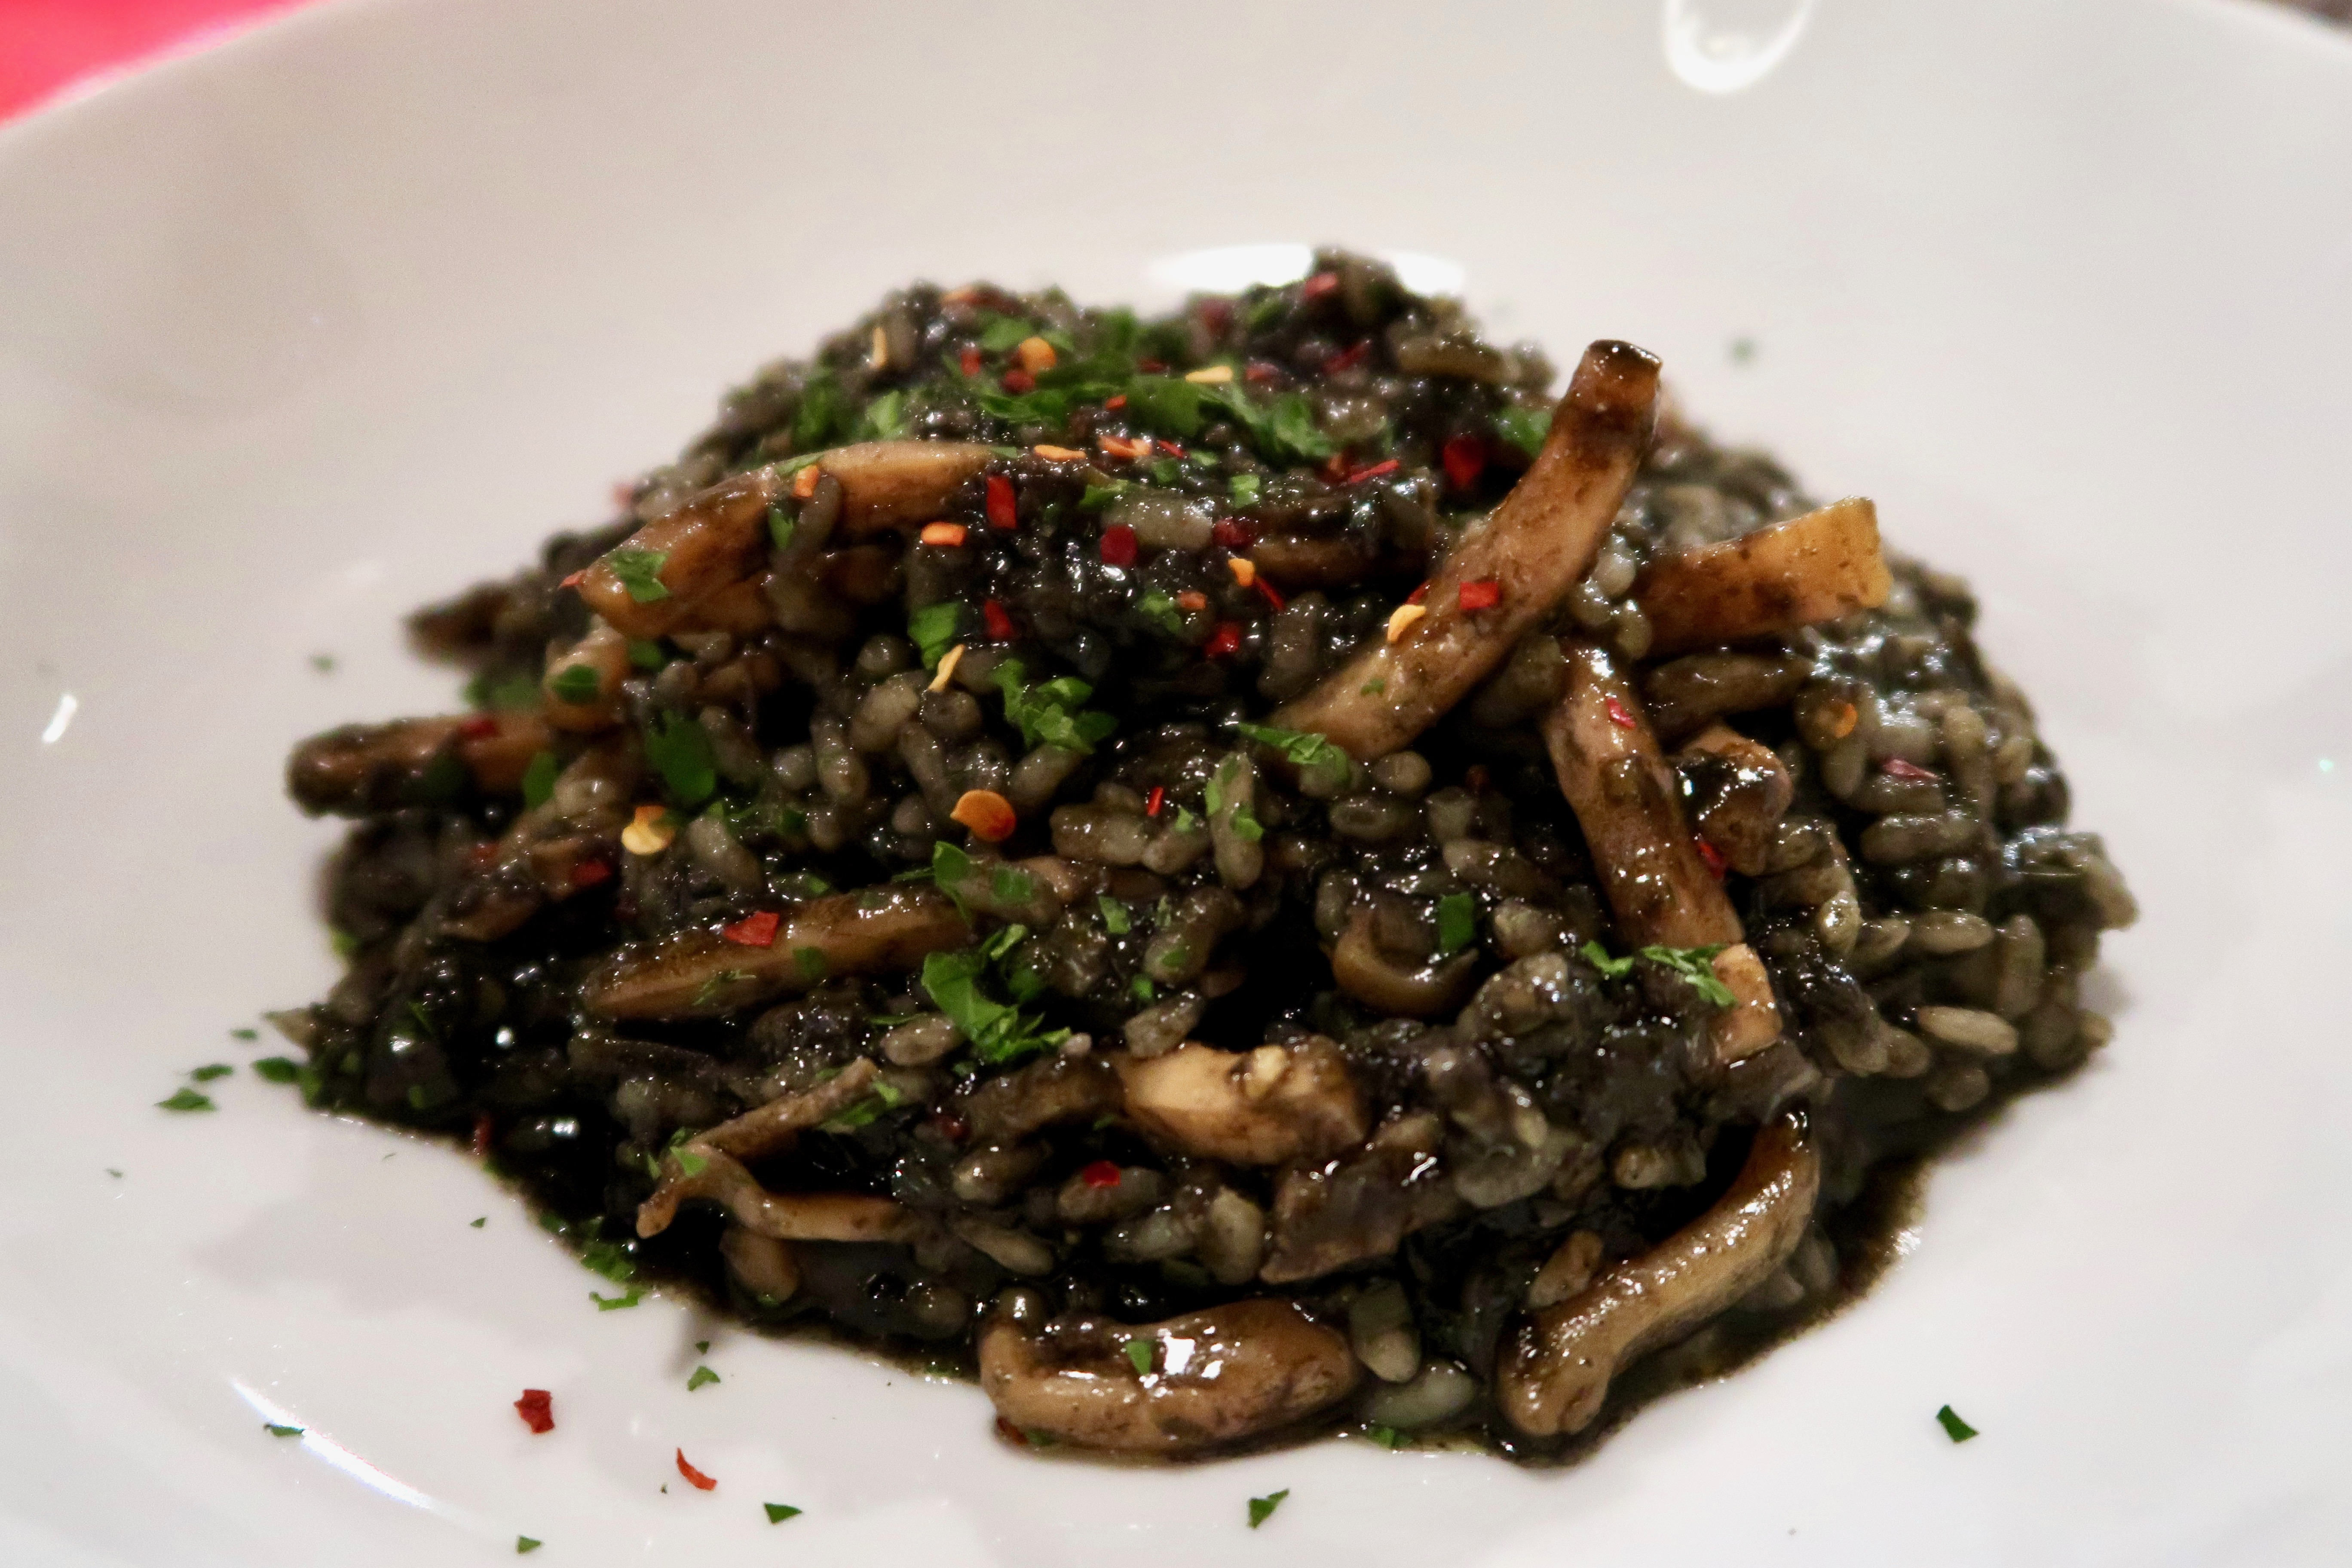 L'Oculto squid ink sauce and rice